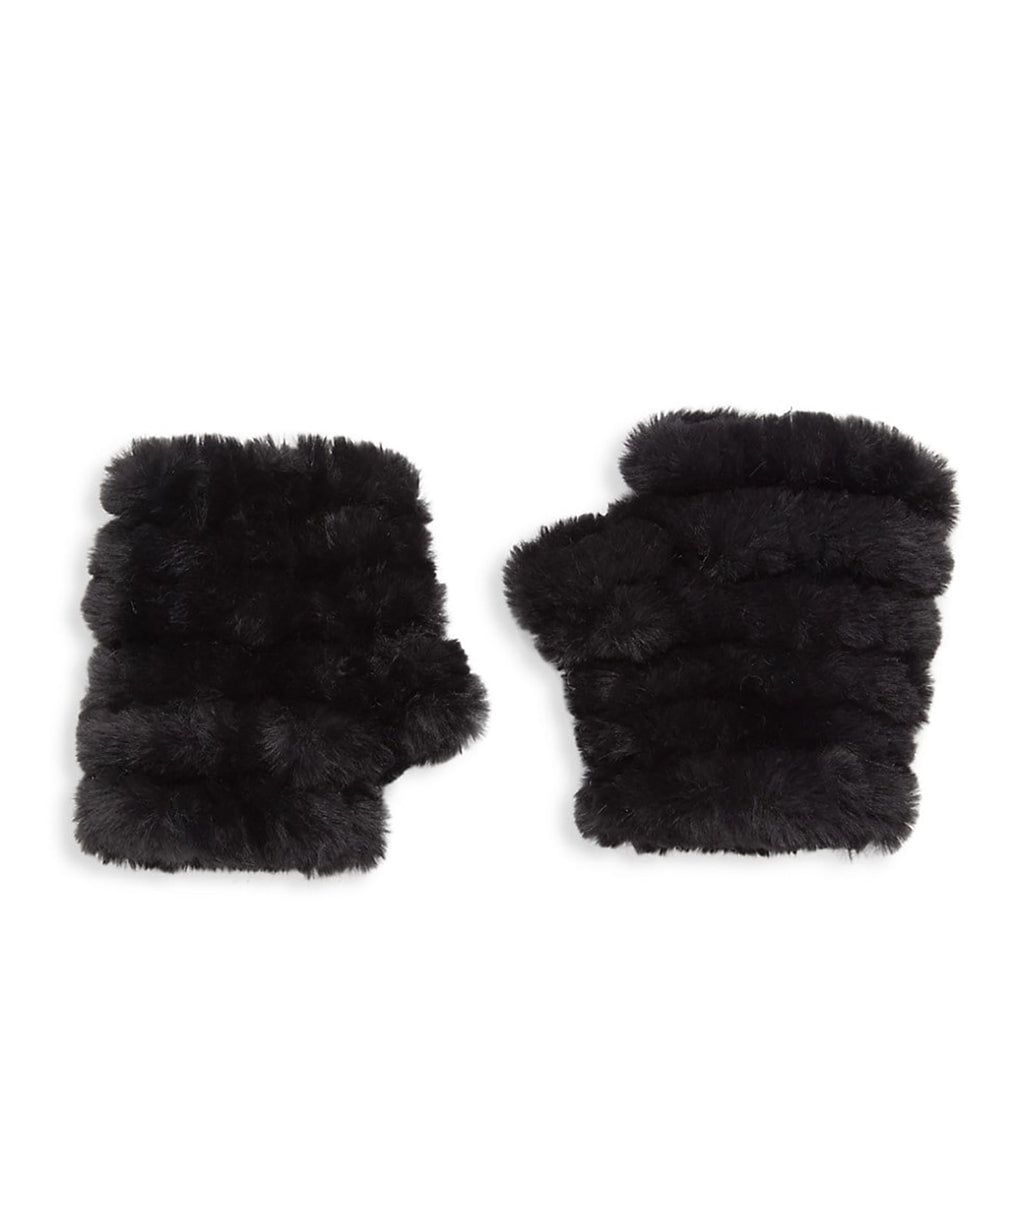 Jocelyn Kids Black Faux Fur Knitted Mittens